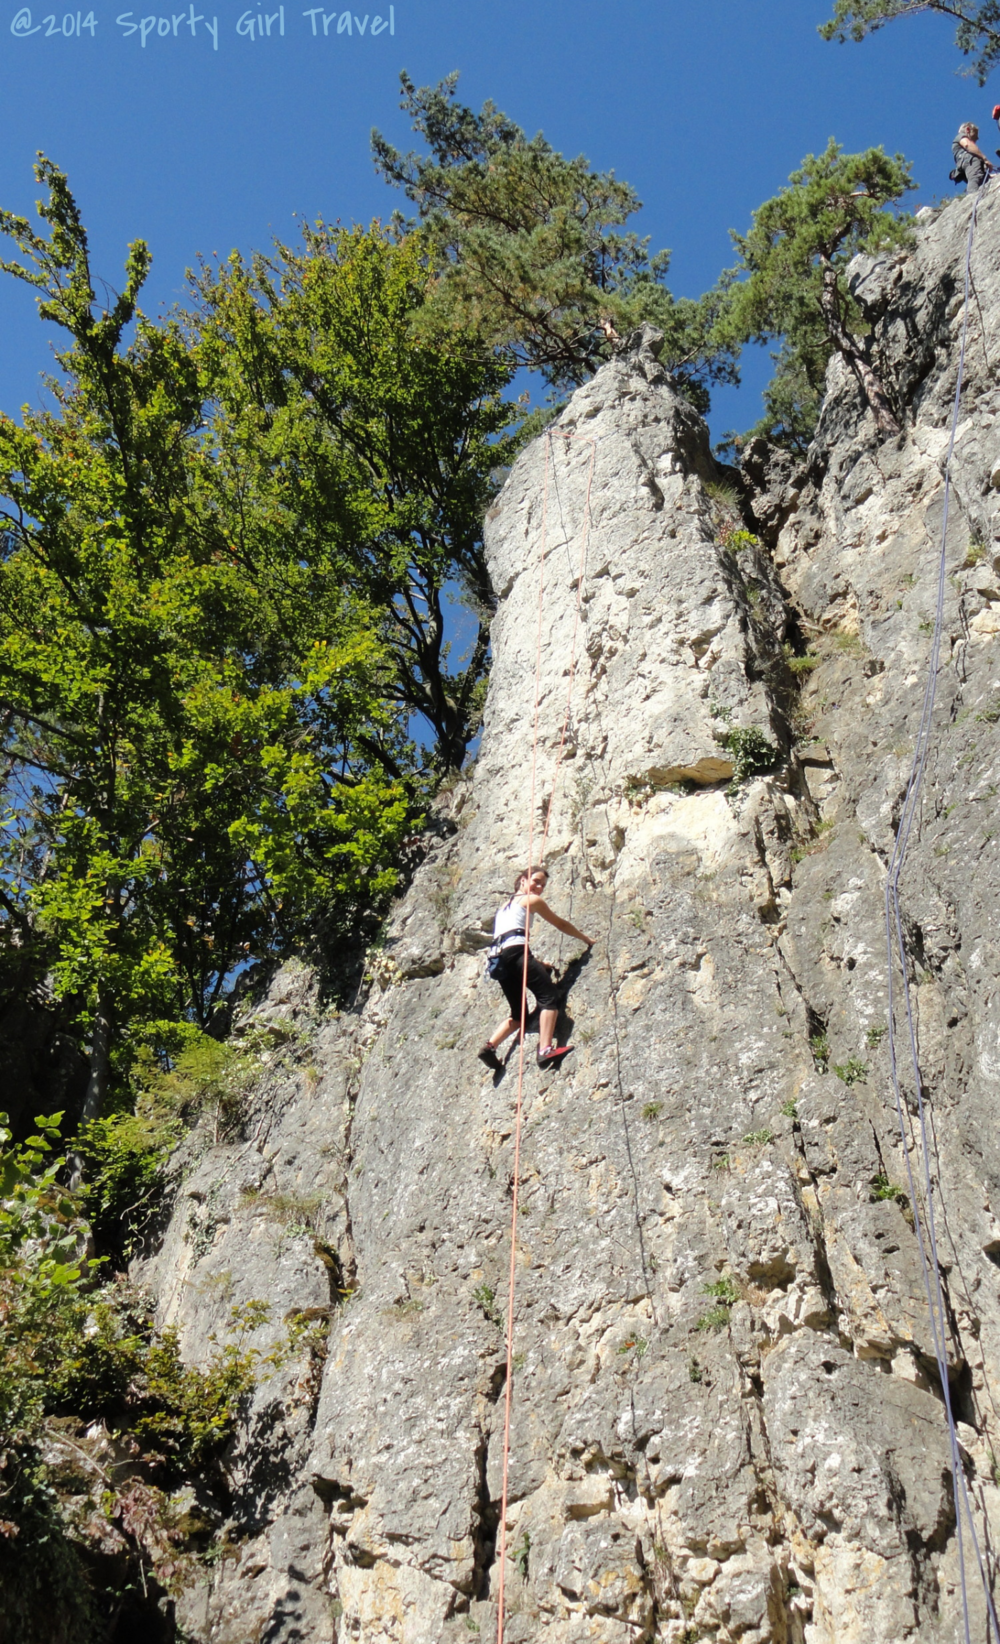 Climb On: The limestone rock is full of finger pockets and holds. Climber: Samara, age 12